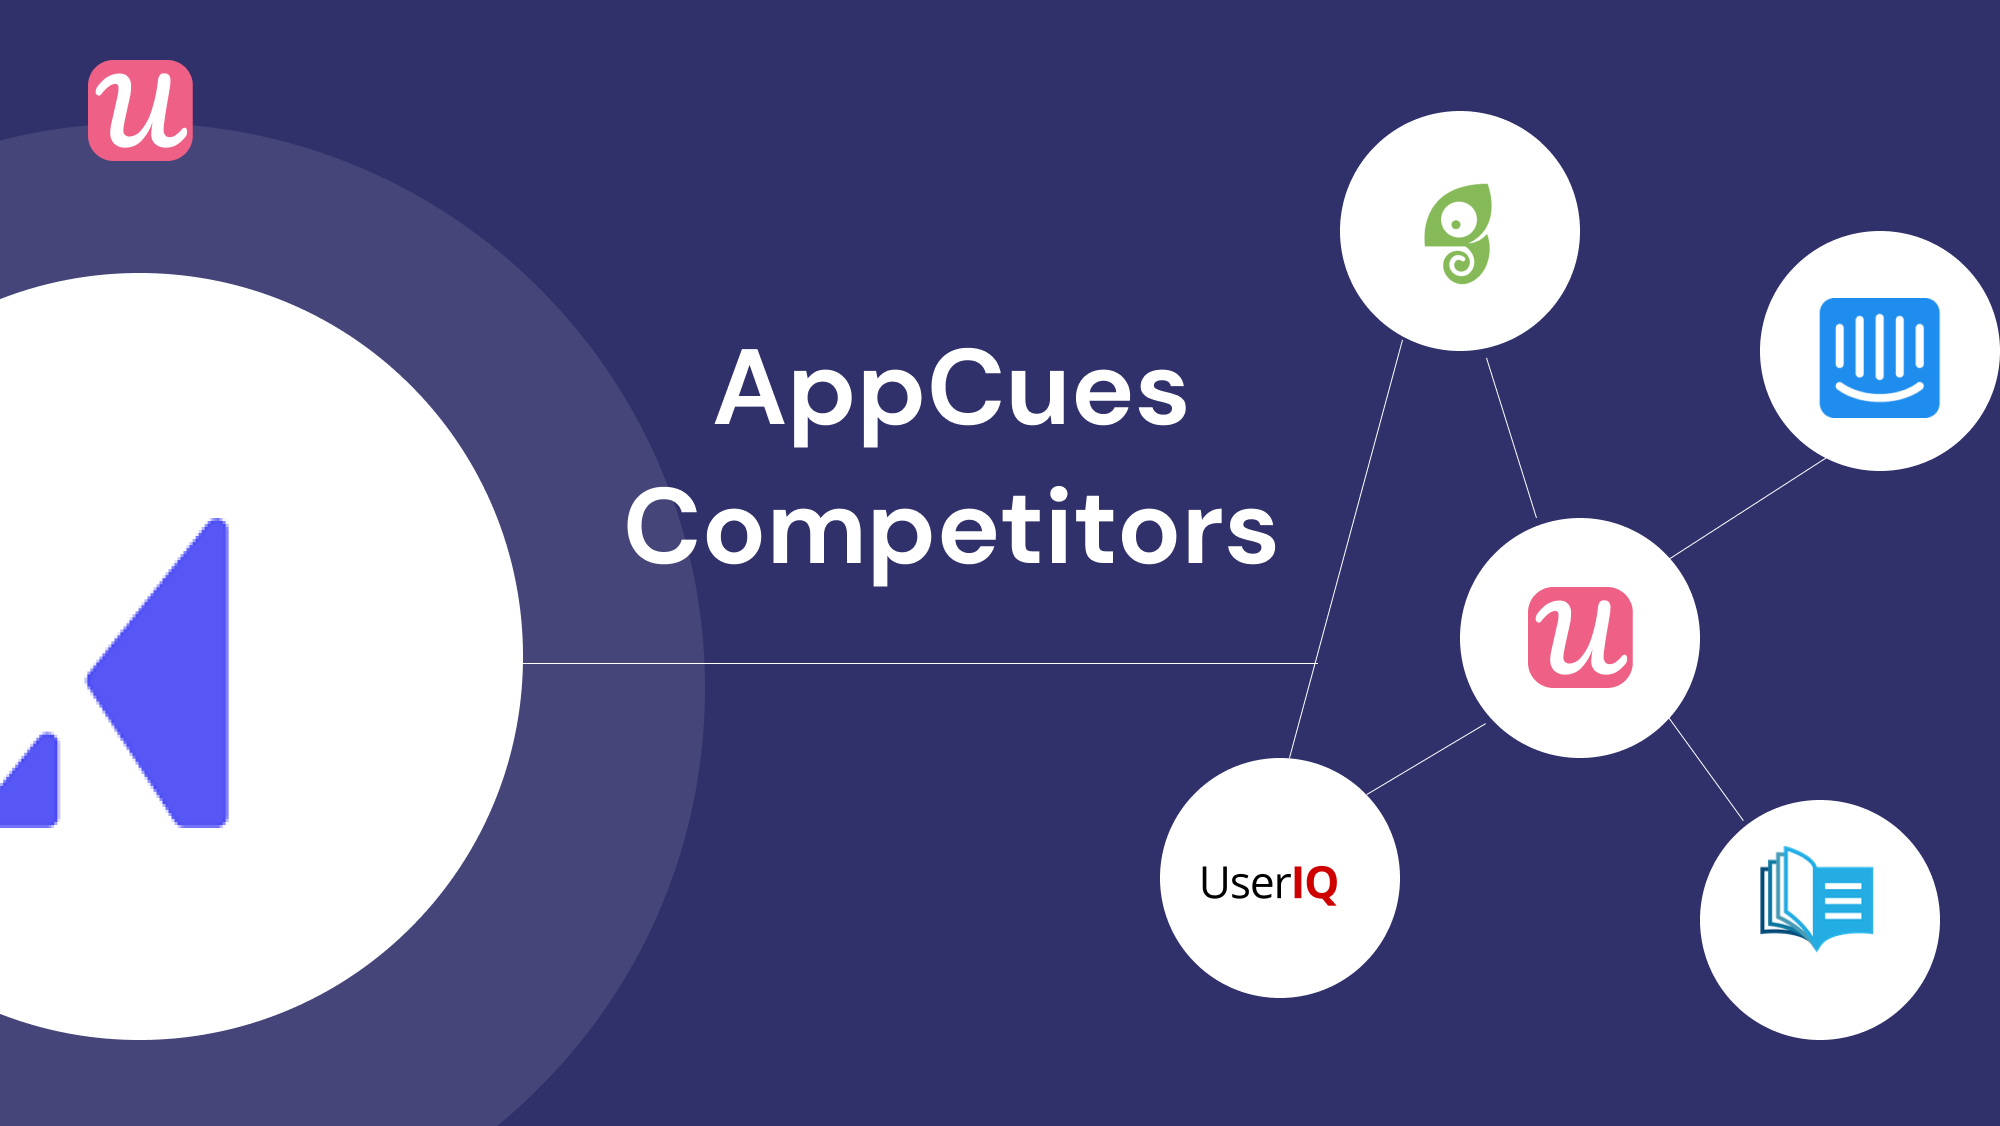 appcues competitors